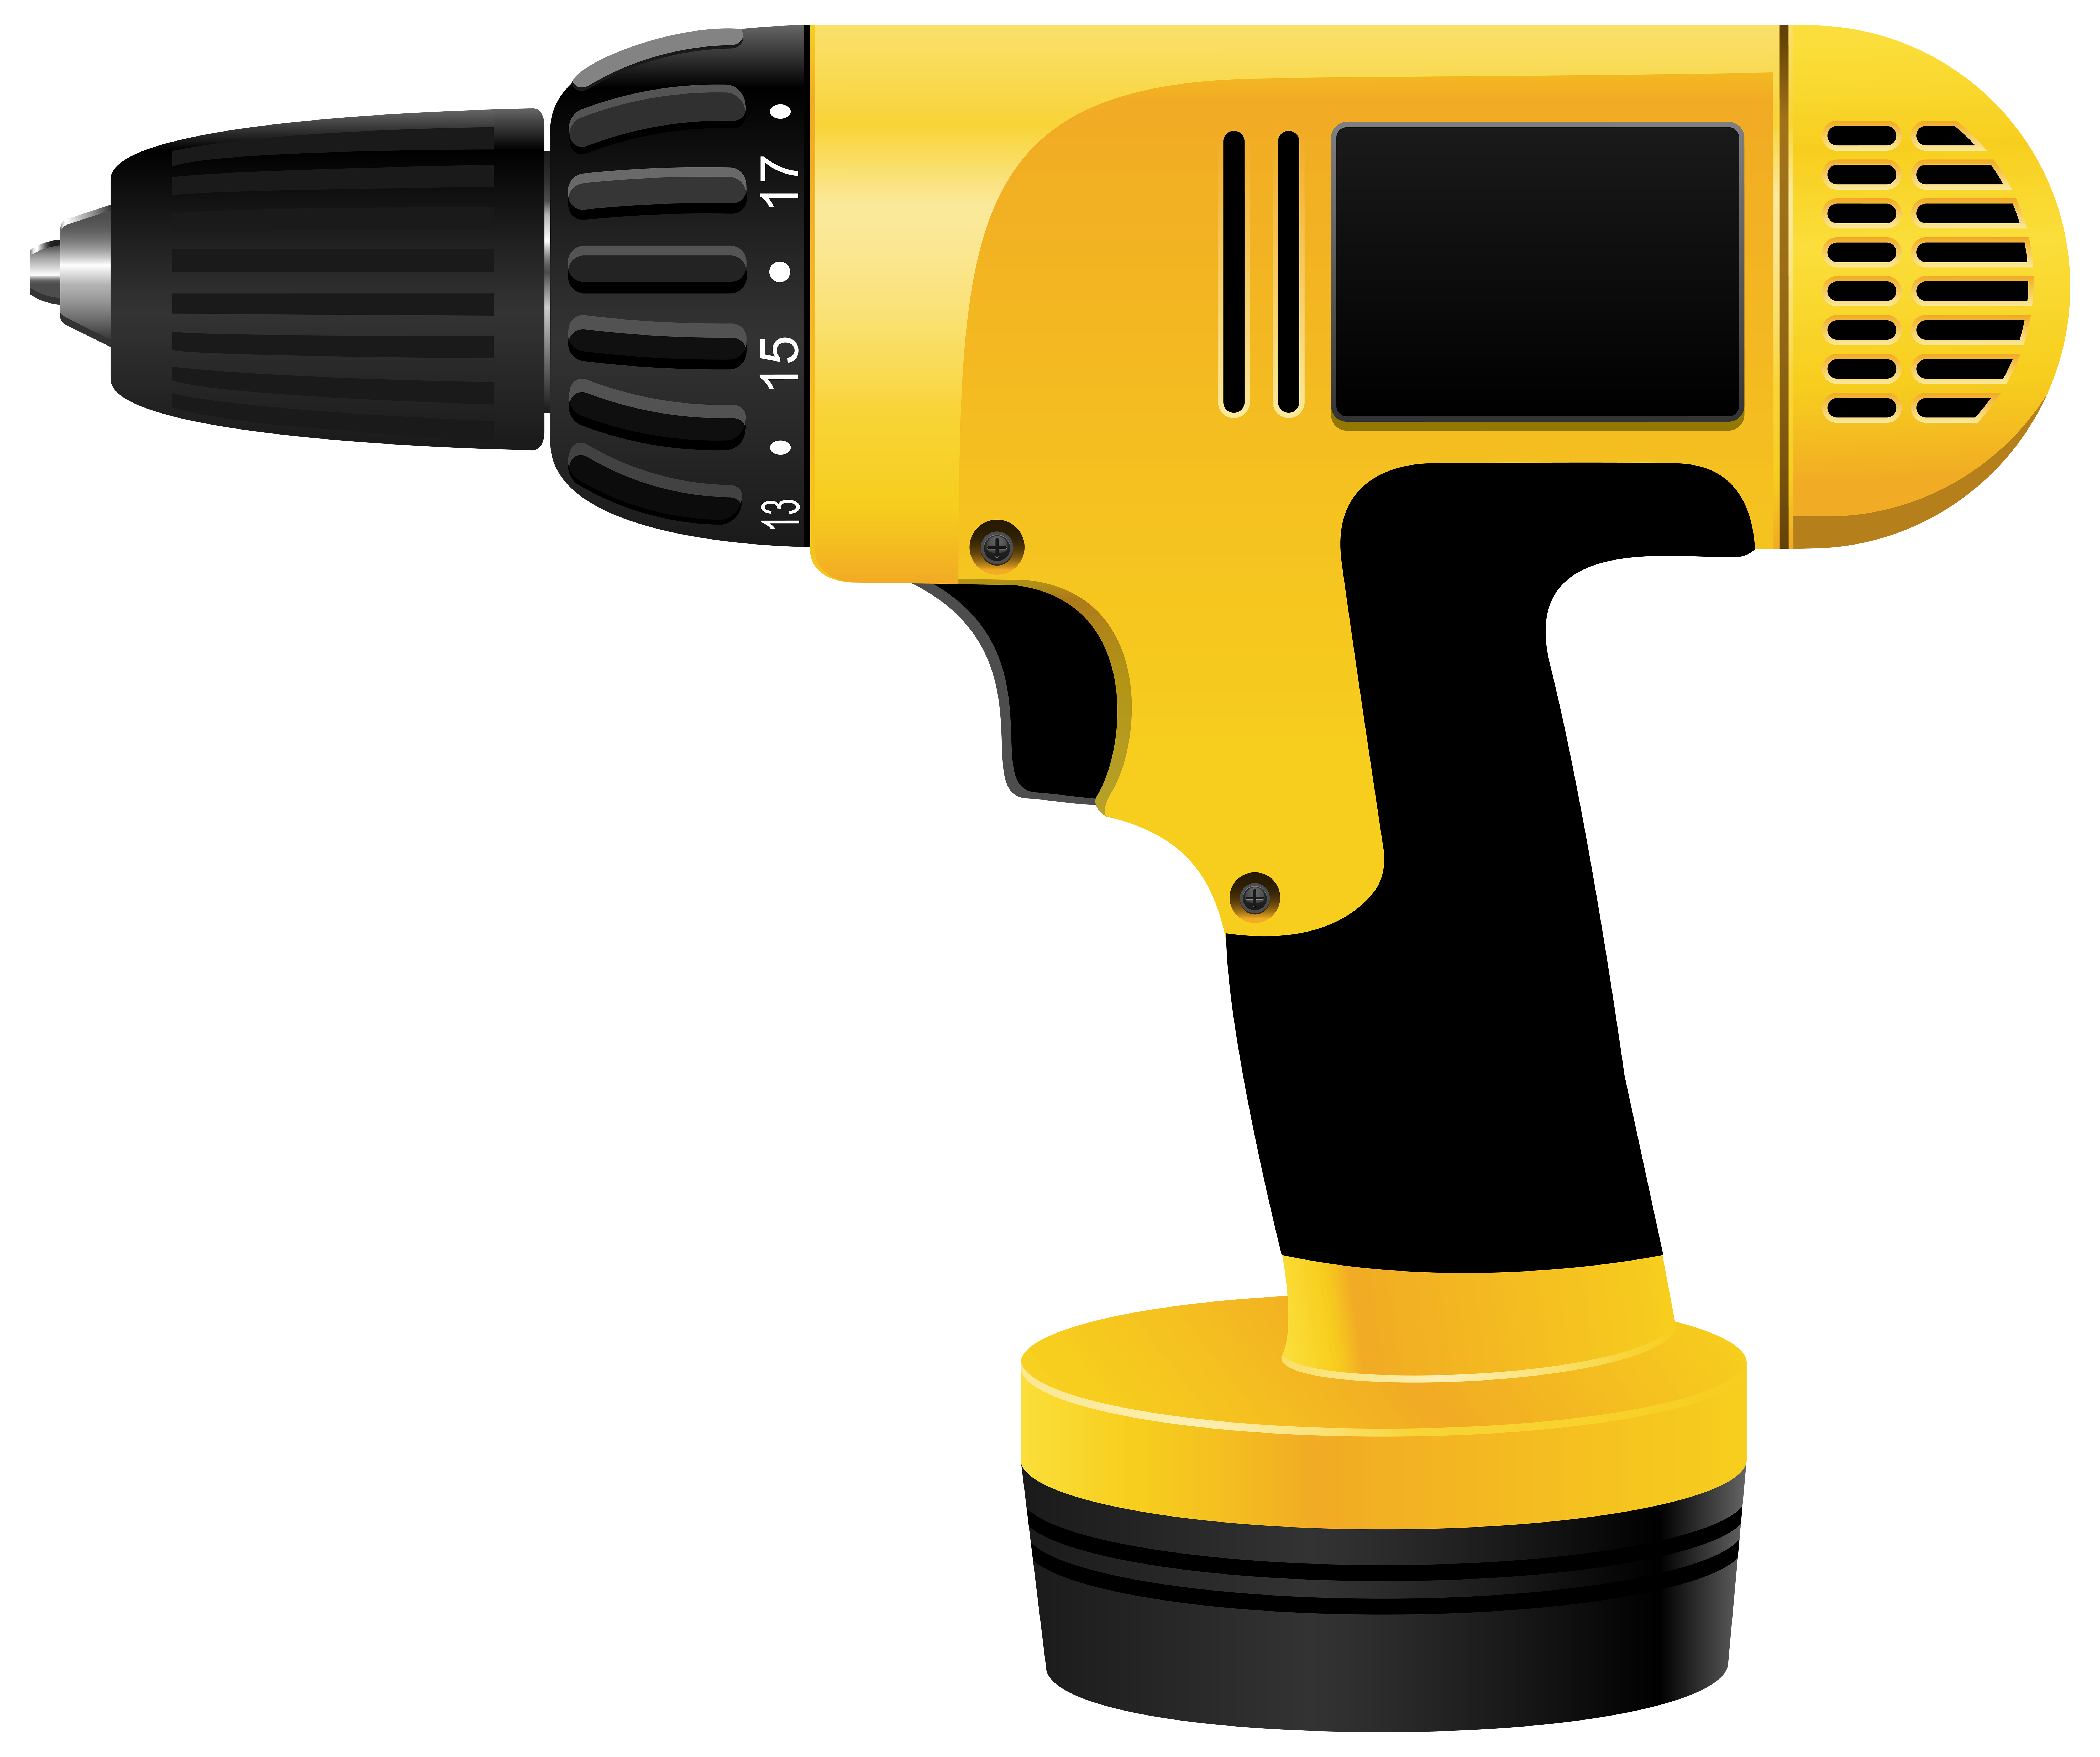 Clipart cars wrench. Electric screwdriver png clip